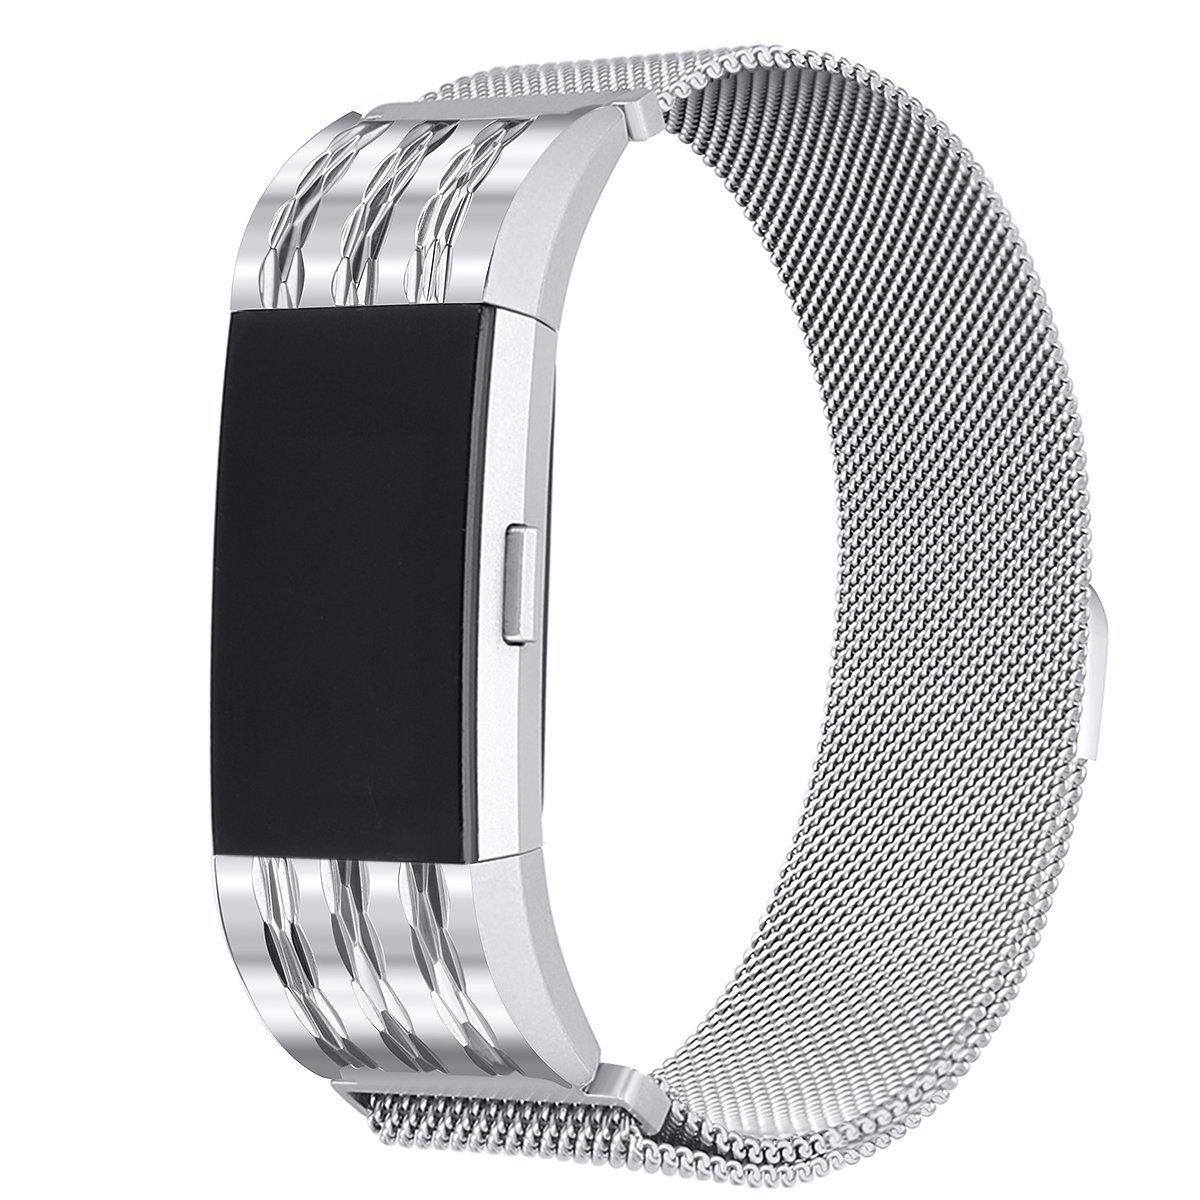 bayite For Fitbit Charge 2 Bands, Silver with Rhombus Pattern Small Stainless Steel Milanese Loop Metal Replacement Accessories Bracelet Strap with Unique Magnet Lock